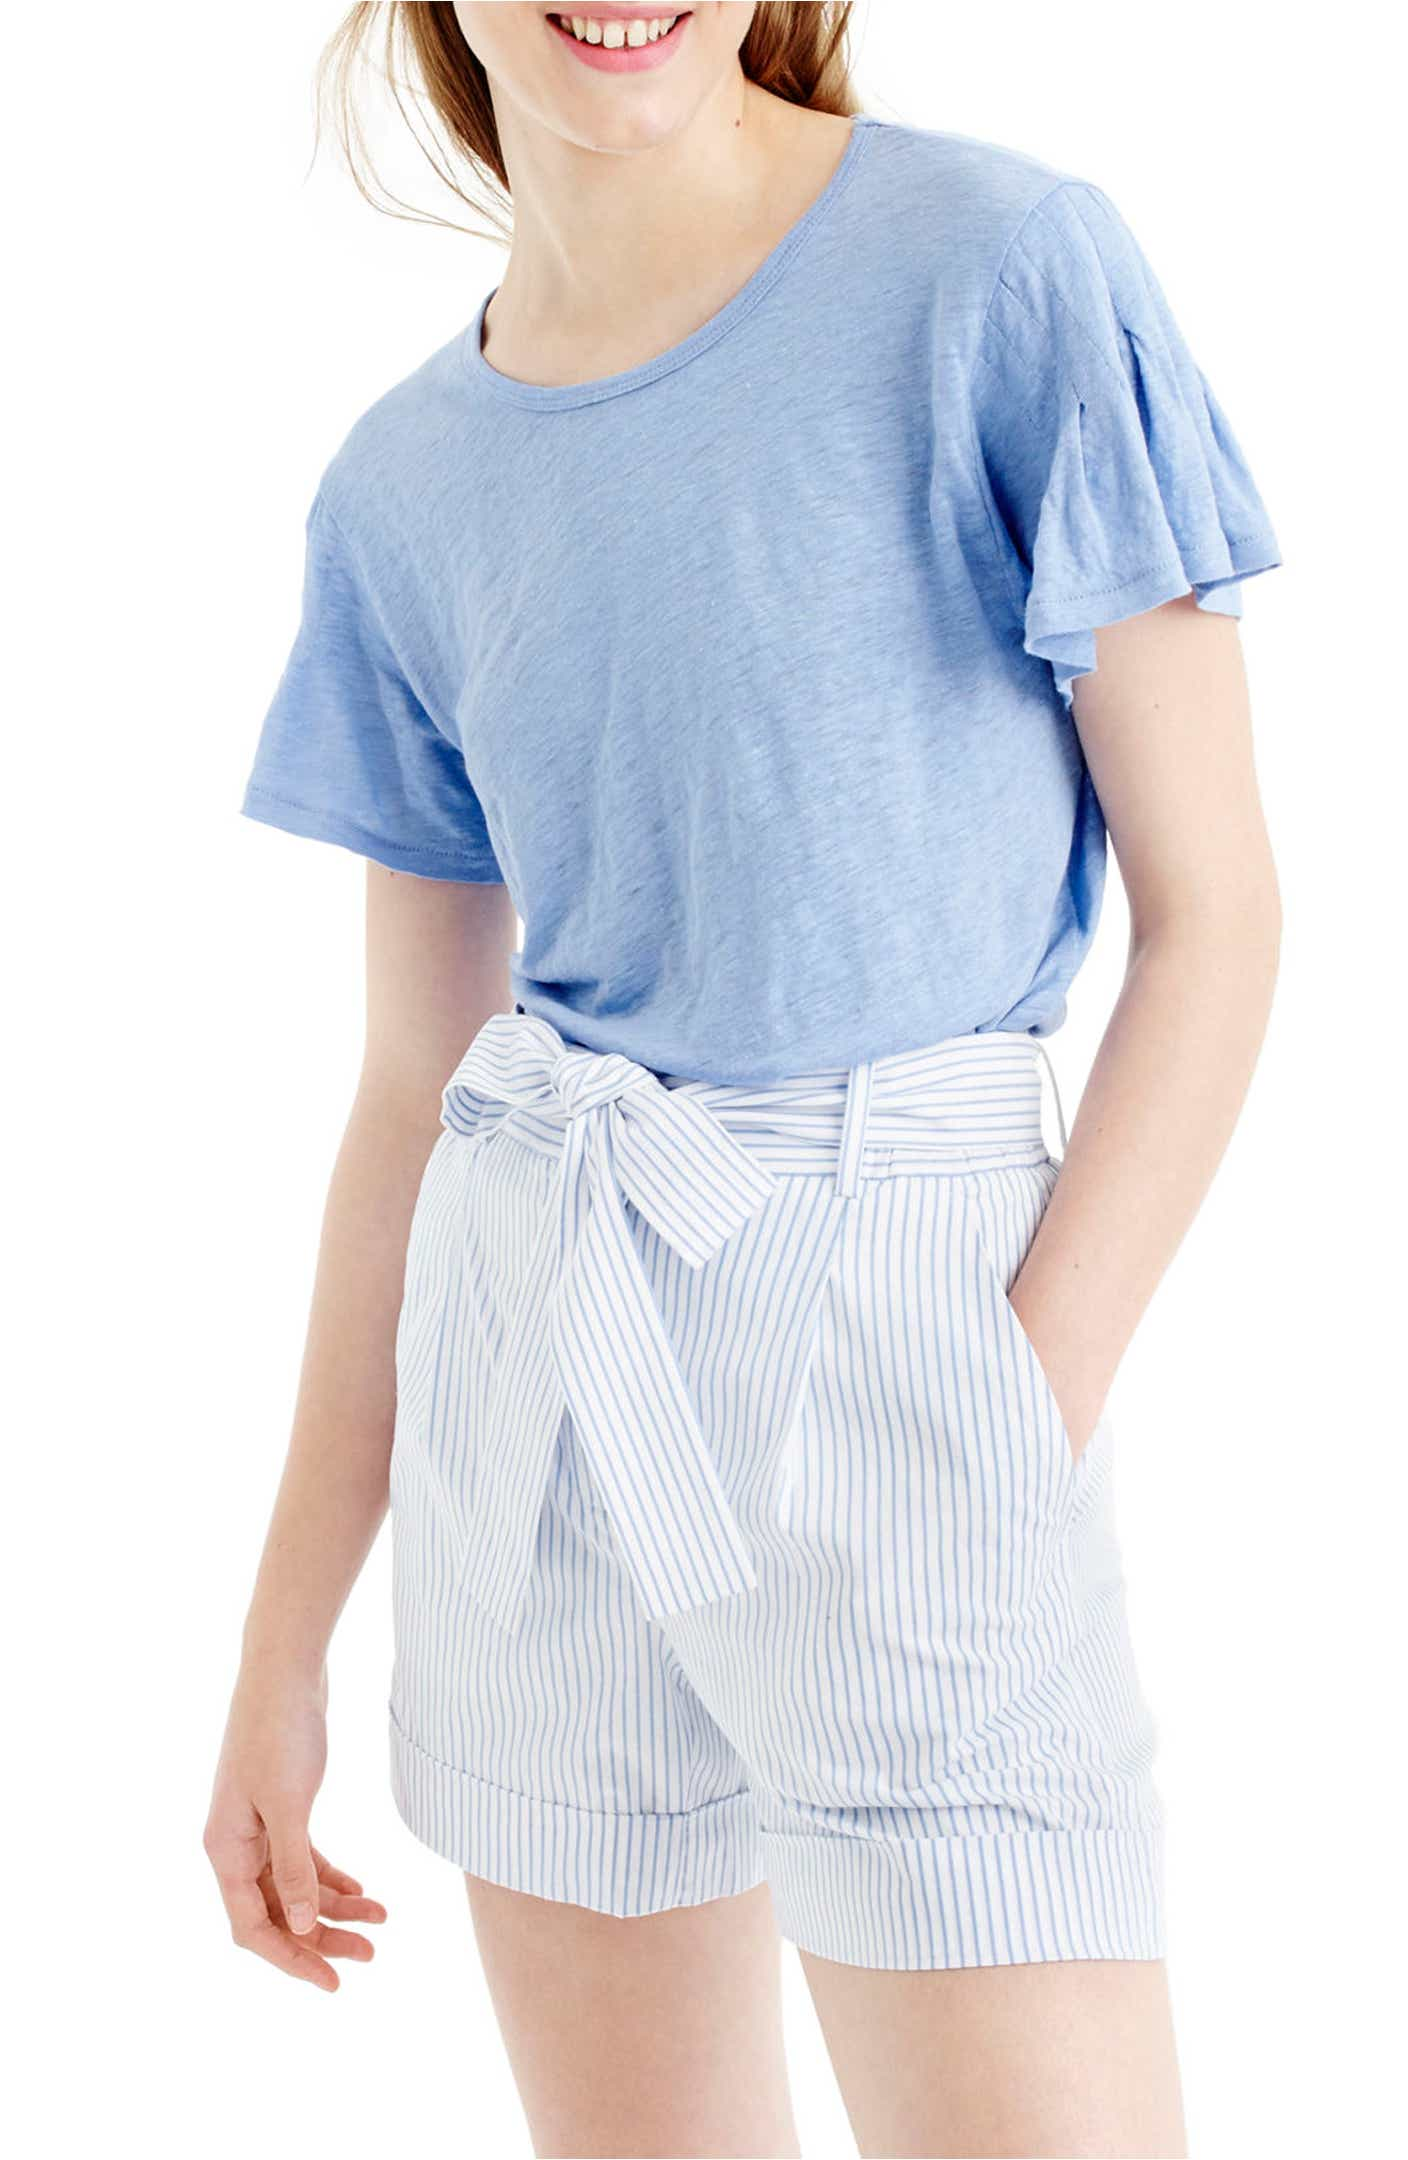 Ruffle sleeved tee